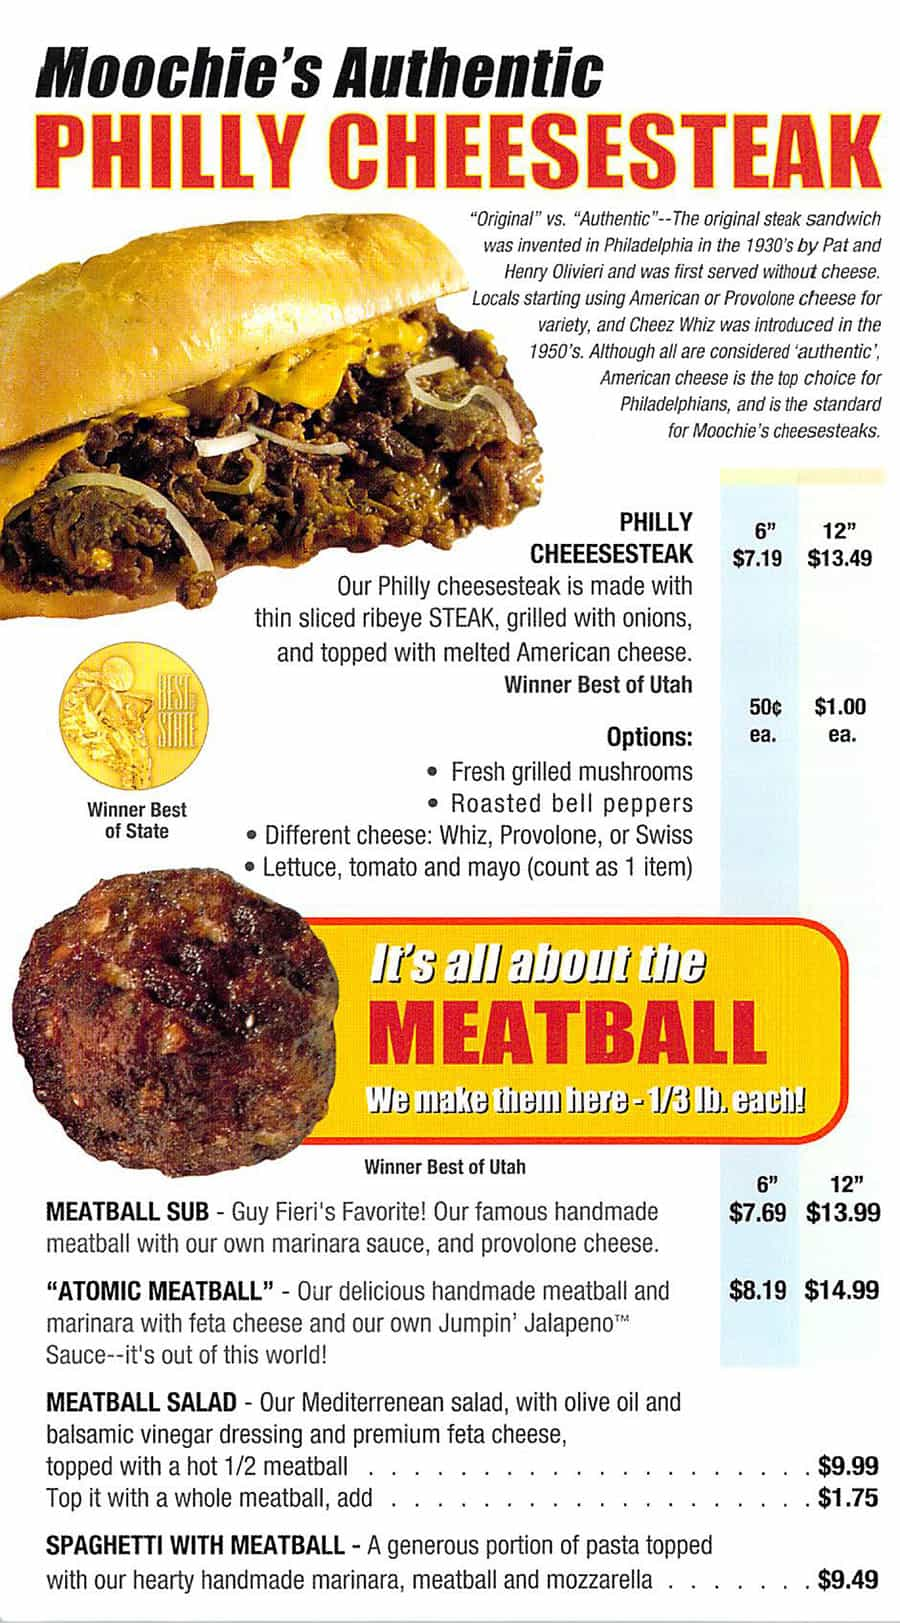 Moochie's Meatballs And More menu - cheesesteaks, meatballs